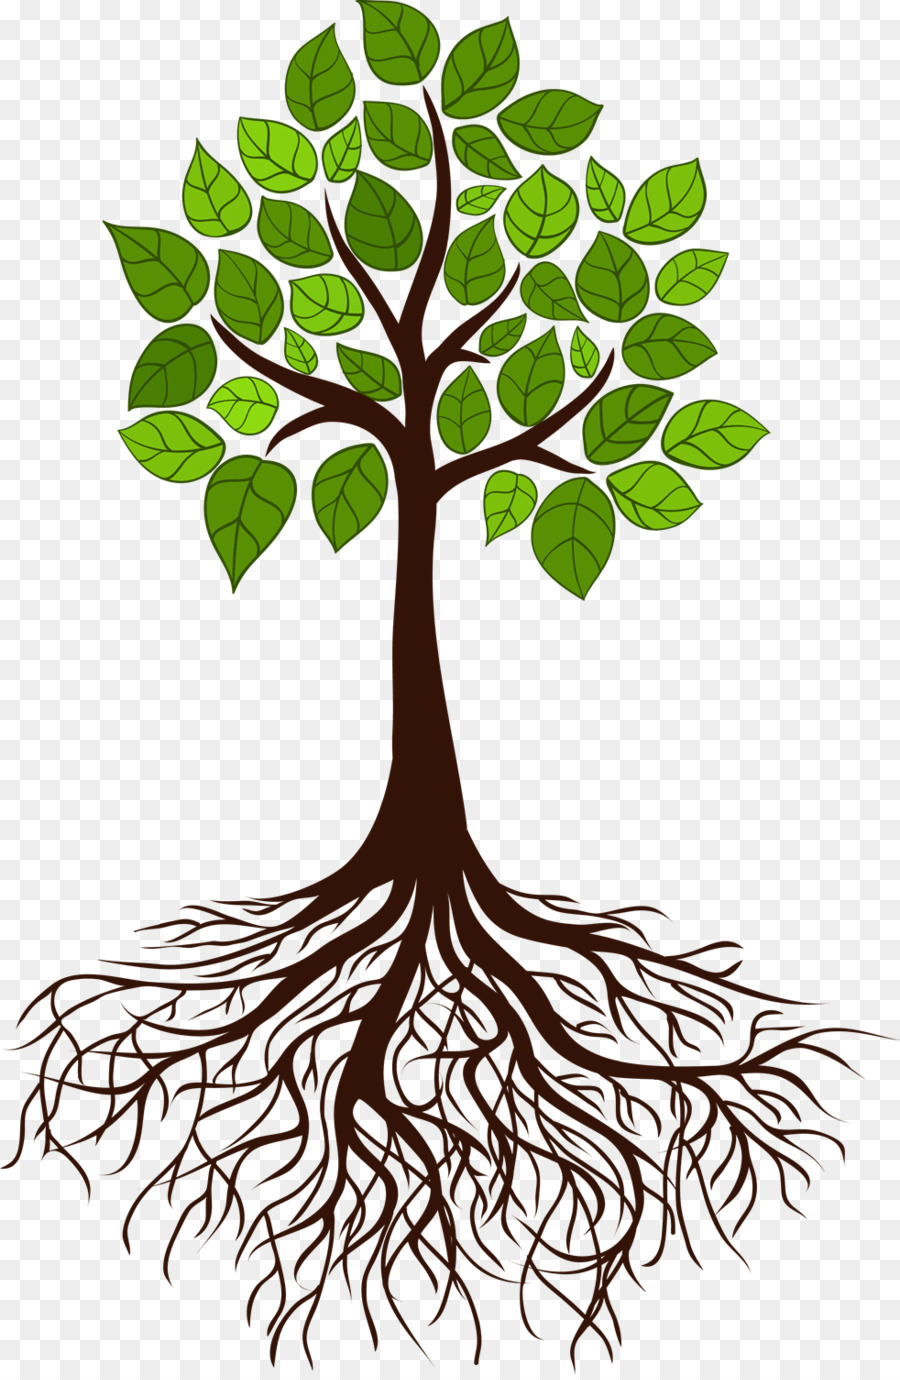 tree root branch tree roots png download 982 1500 free transparent plant png download. Black Bedroom Furniture Sets. Home Design Ideas